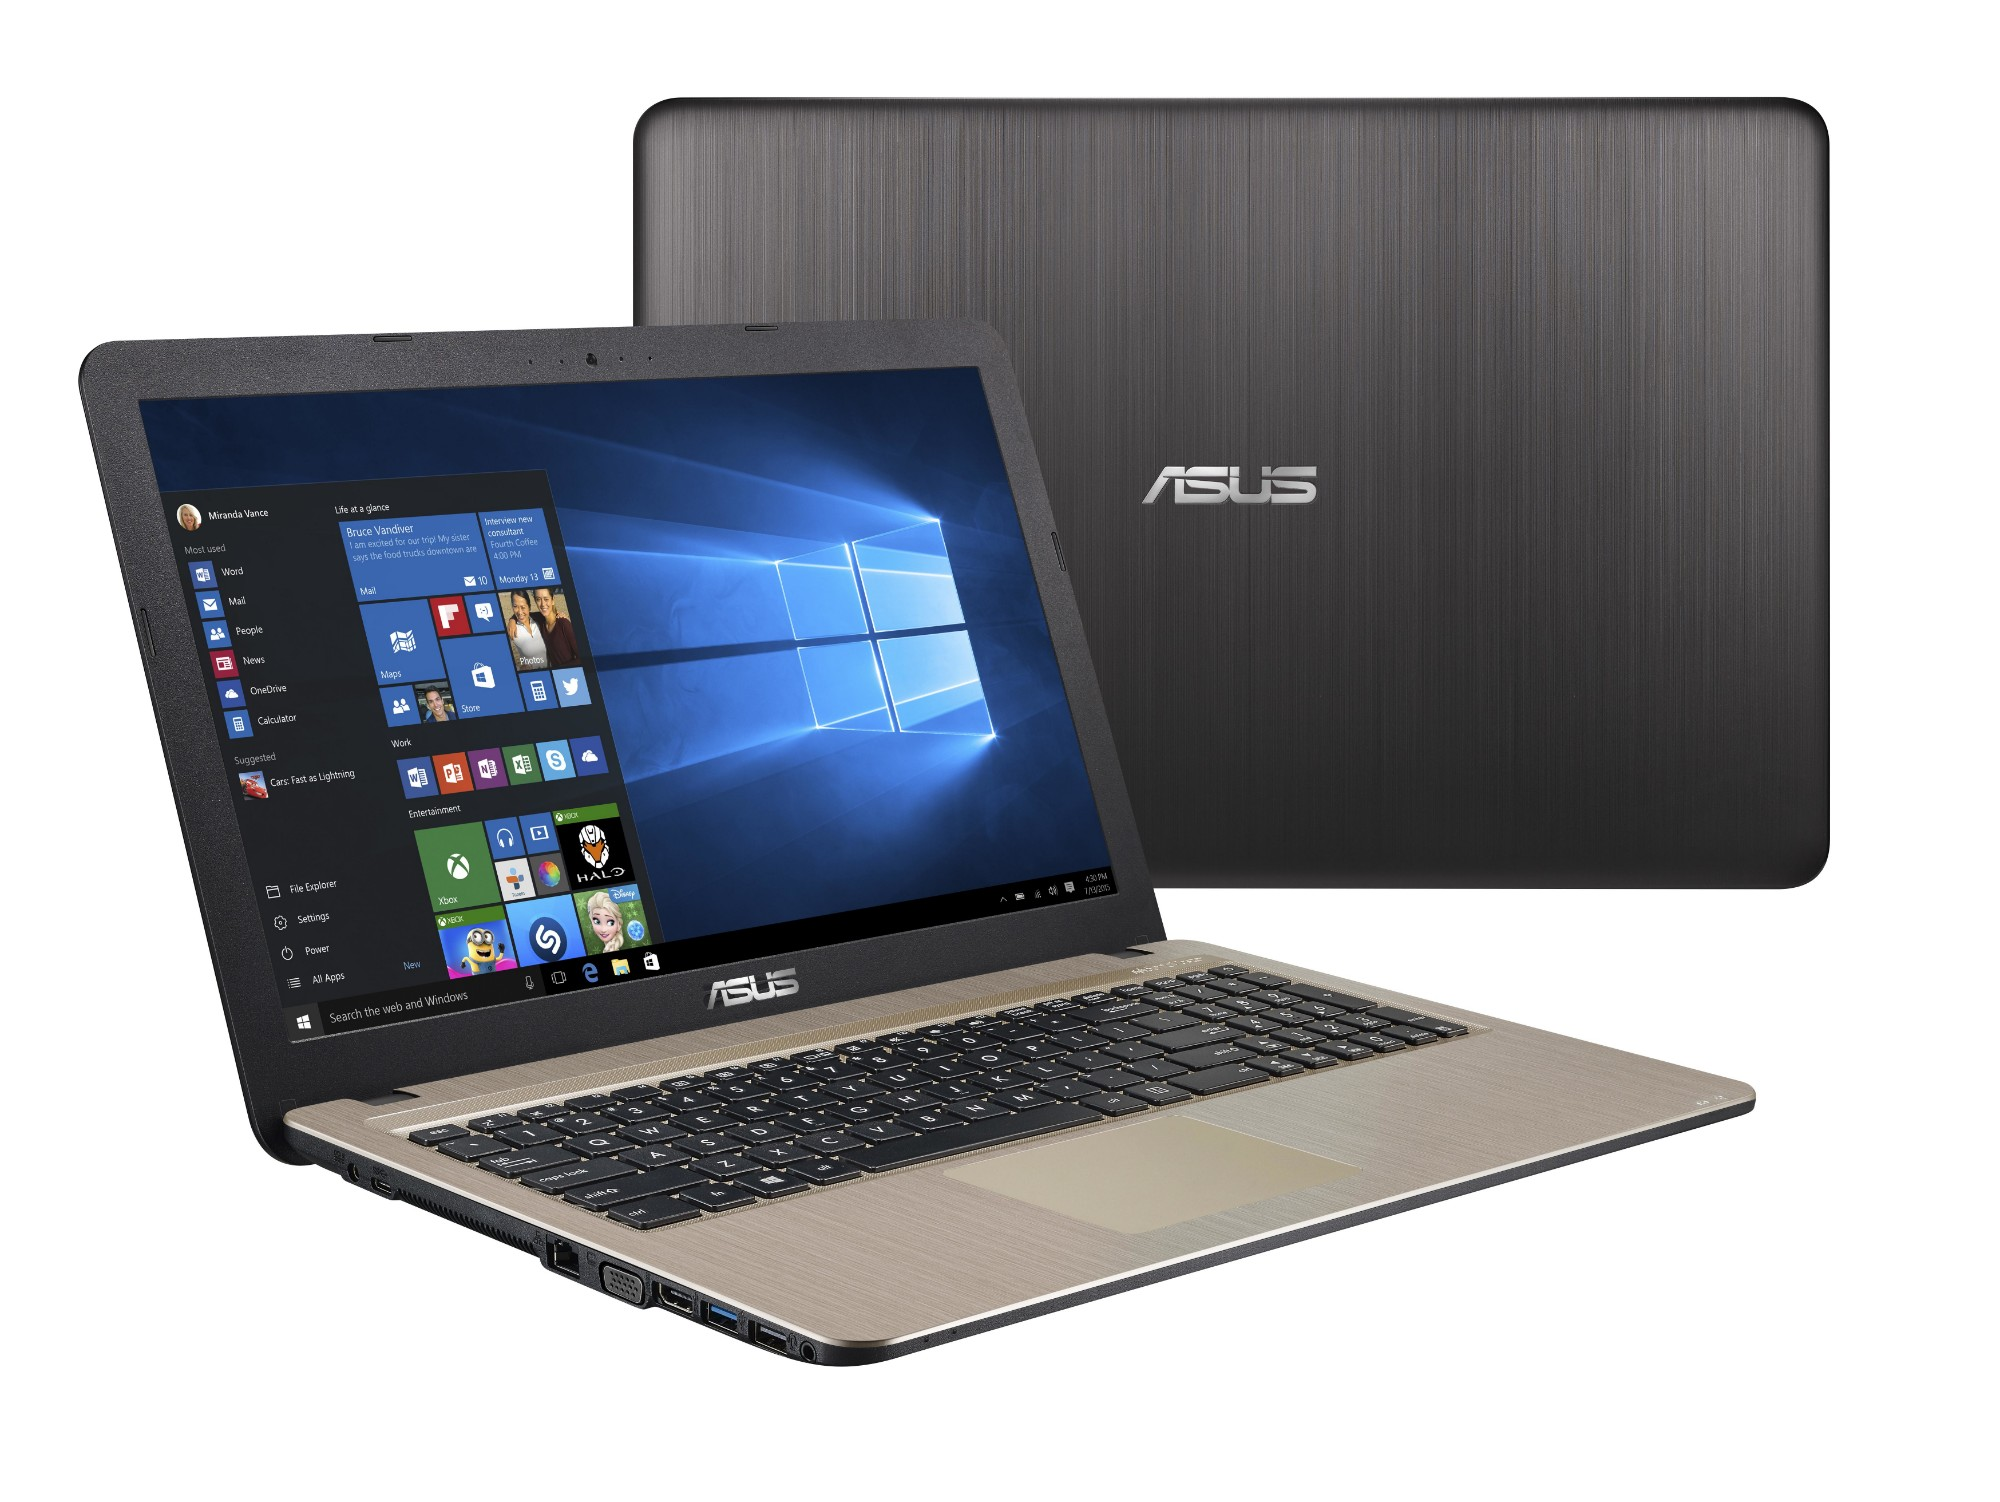 "ASUS VivoBook X540MA-DM152T notebook Black,Chocolate 39.6 cm (15.6"") 1920 x 1080 pixels Intel® Pentium® N5000 4 GB LPDDR4-SDRAM 1000 GB HDD"